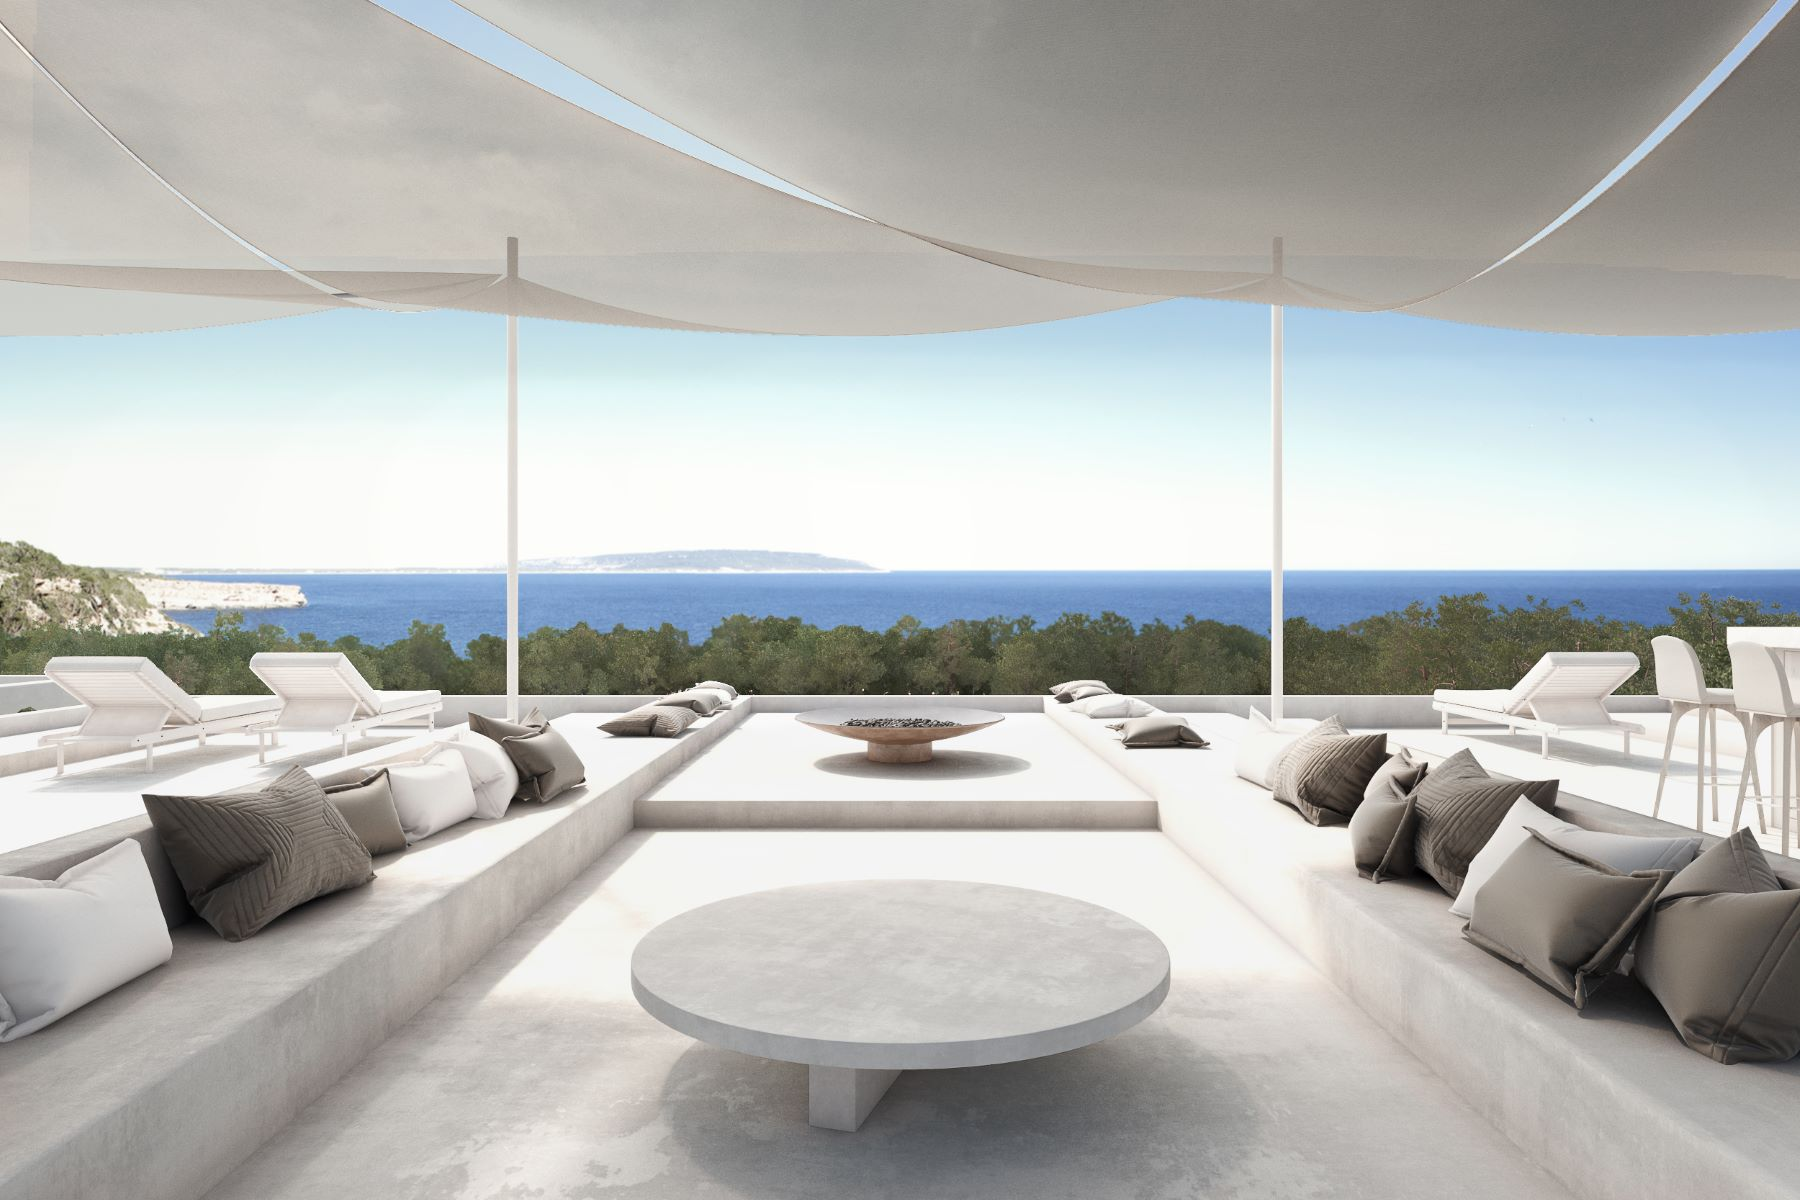 Single Family Homes for Sale at Modern Waterfront Home Project - Direct Sea View Formentera, Balearic Islands 07866 Spain